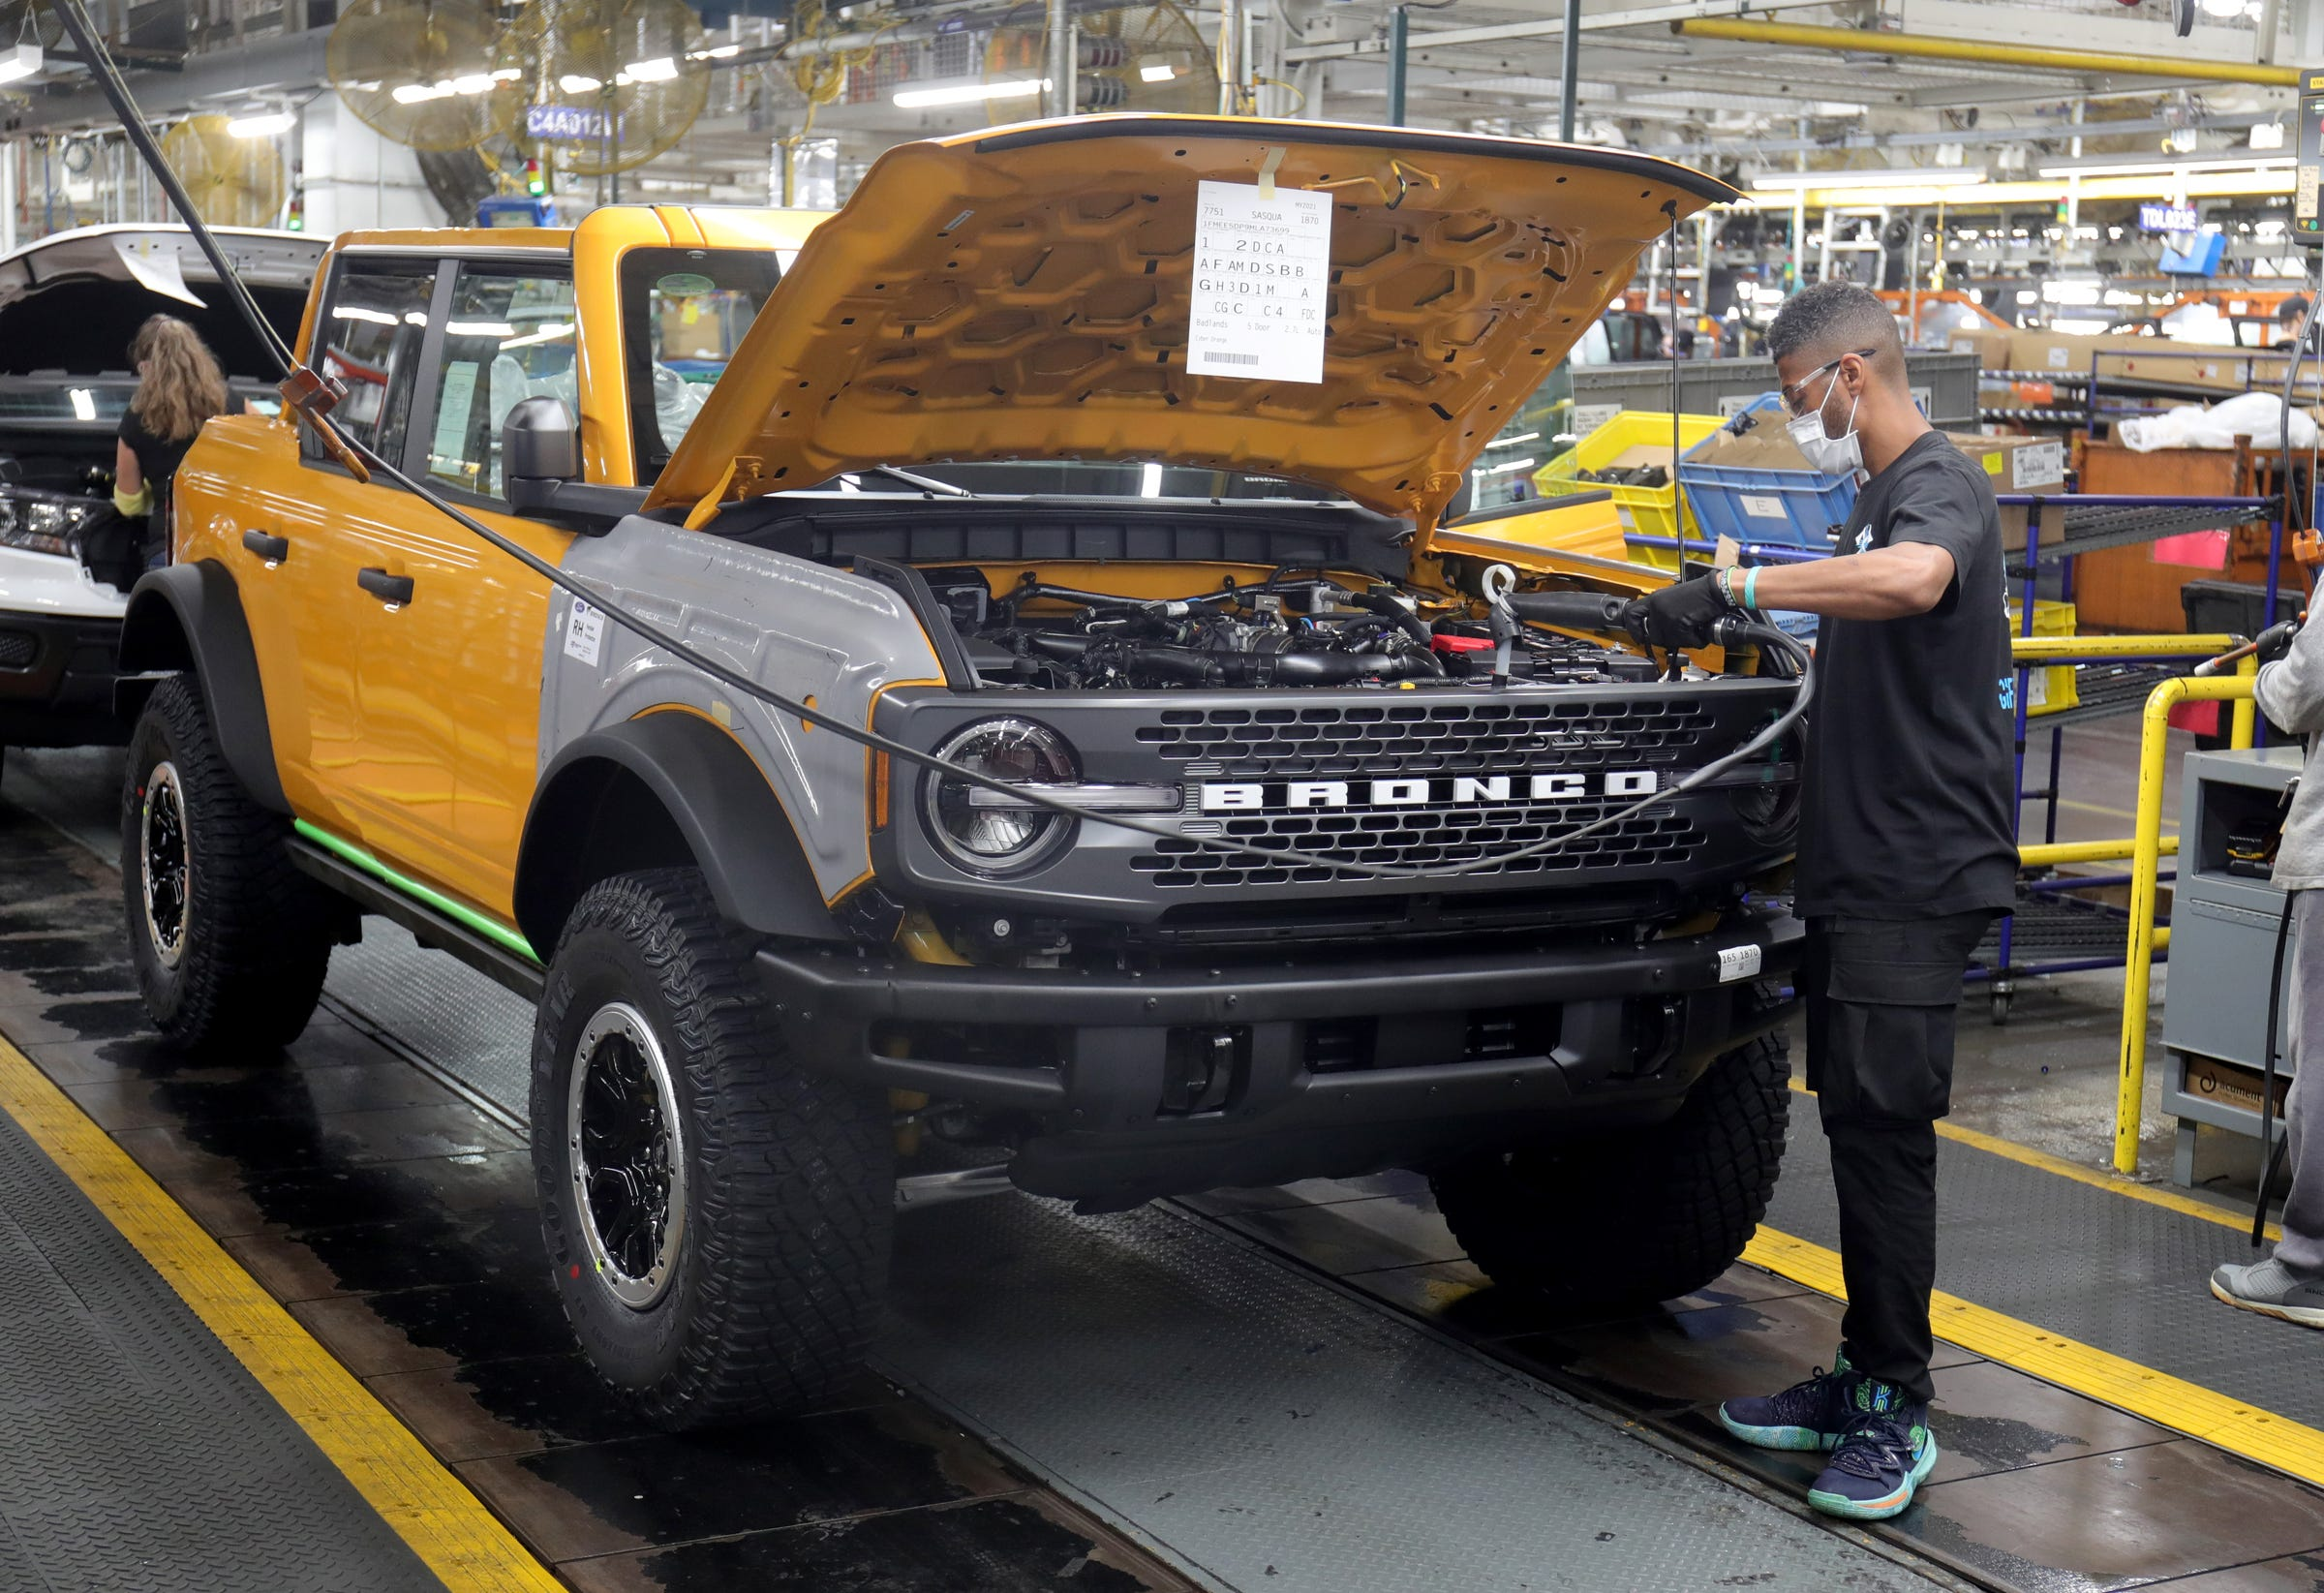 Long-awaited Ford Bronco starts shipping, filling 125,000 orders